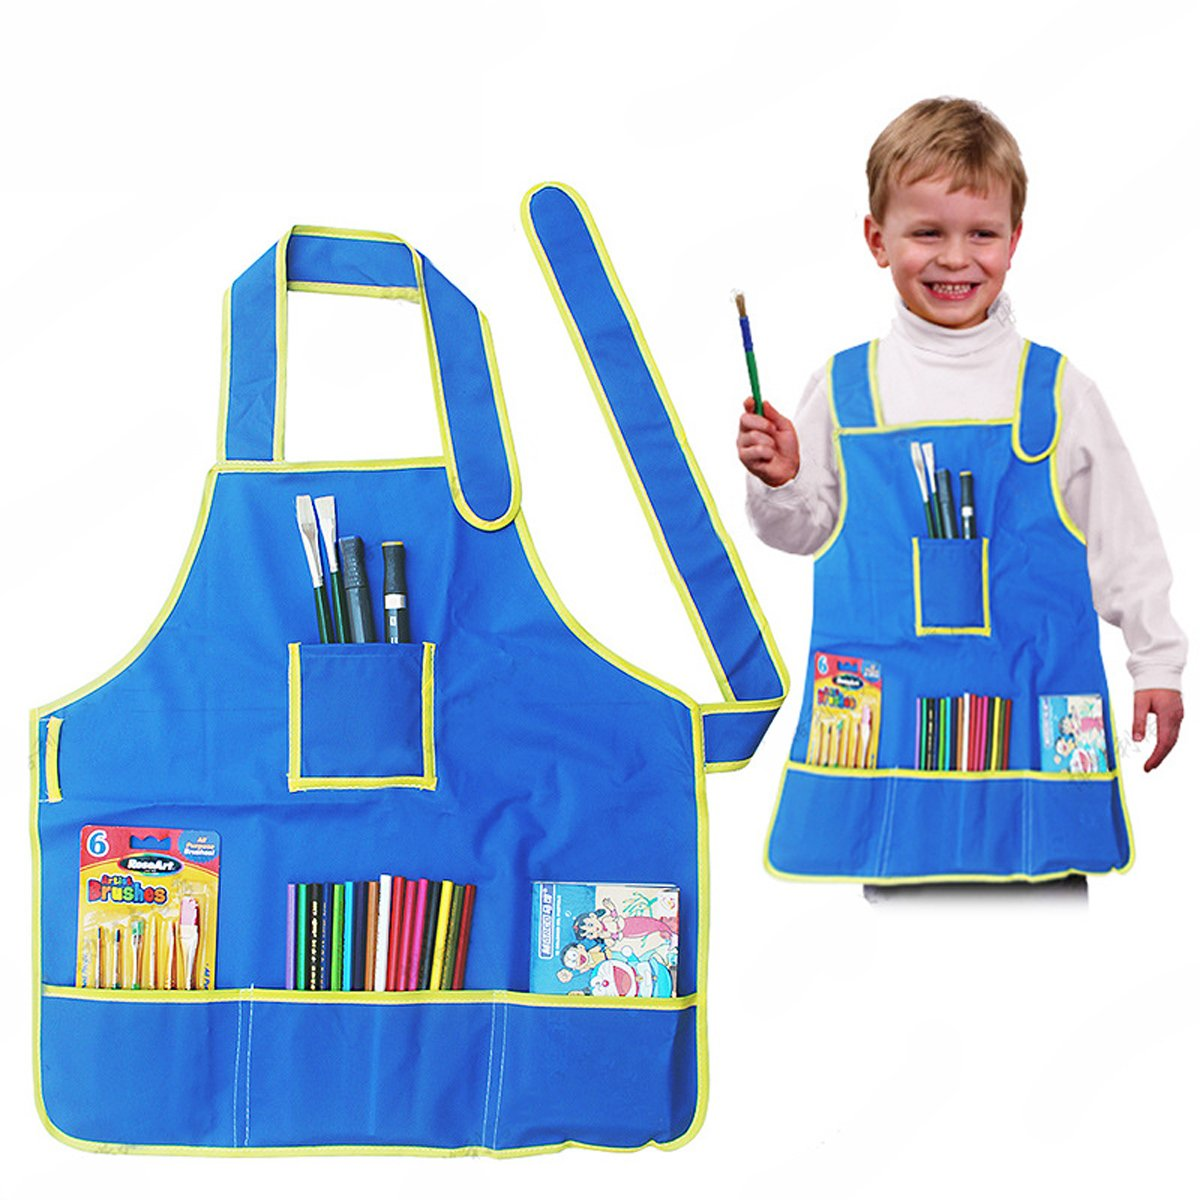 Sayeec Children's Artists Fabric Aprons Waterproof Safe Clean Sleeveless Aprons Painting Aprons with Pockets for Kitchen Classroom Community Event Crafts & Art Painting Activity